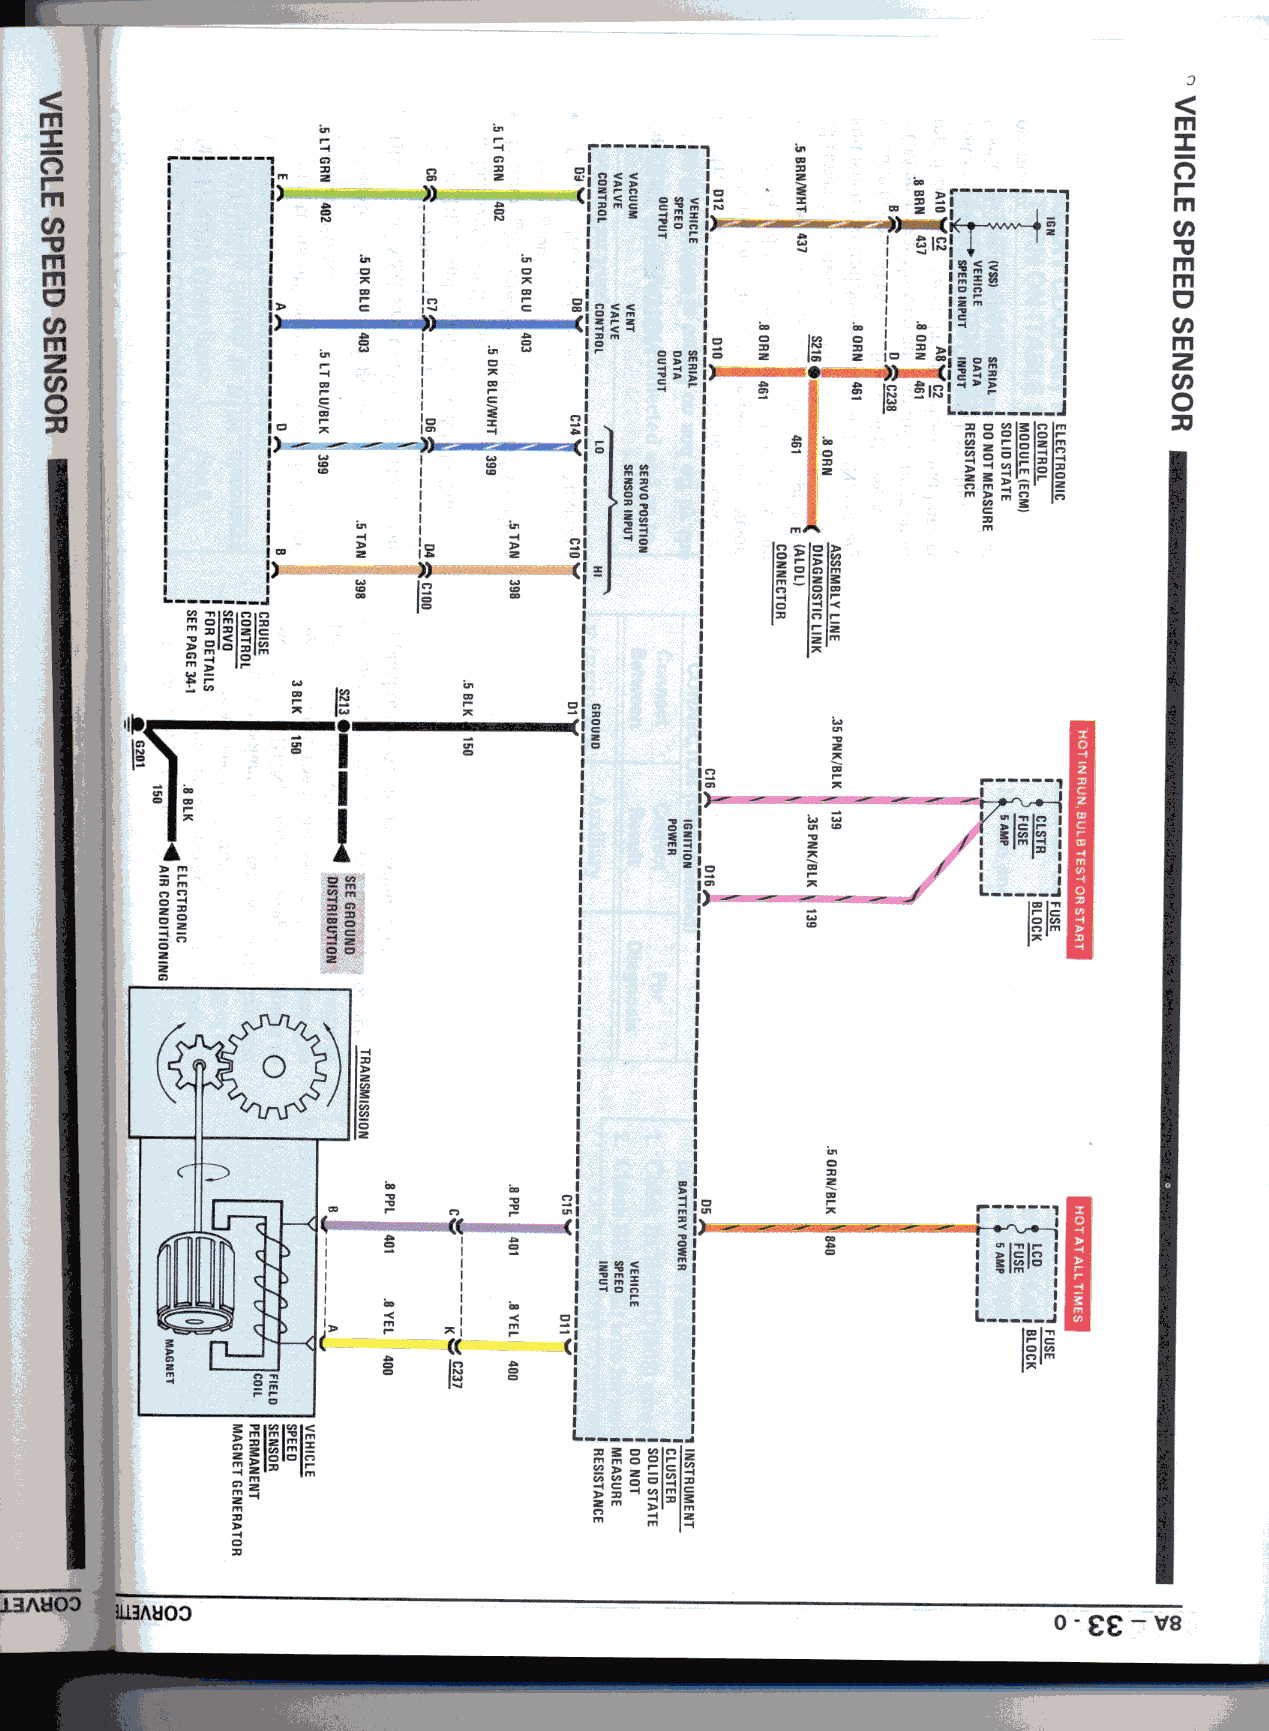 I Need A Wiring Diagram Schematic For Computer